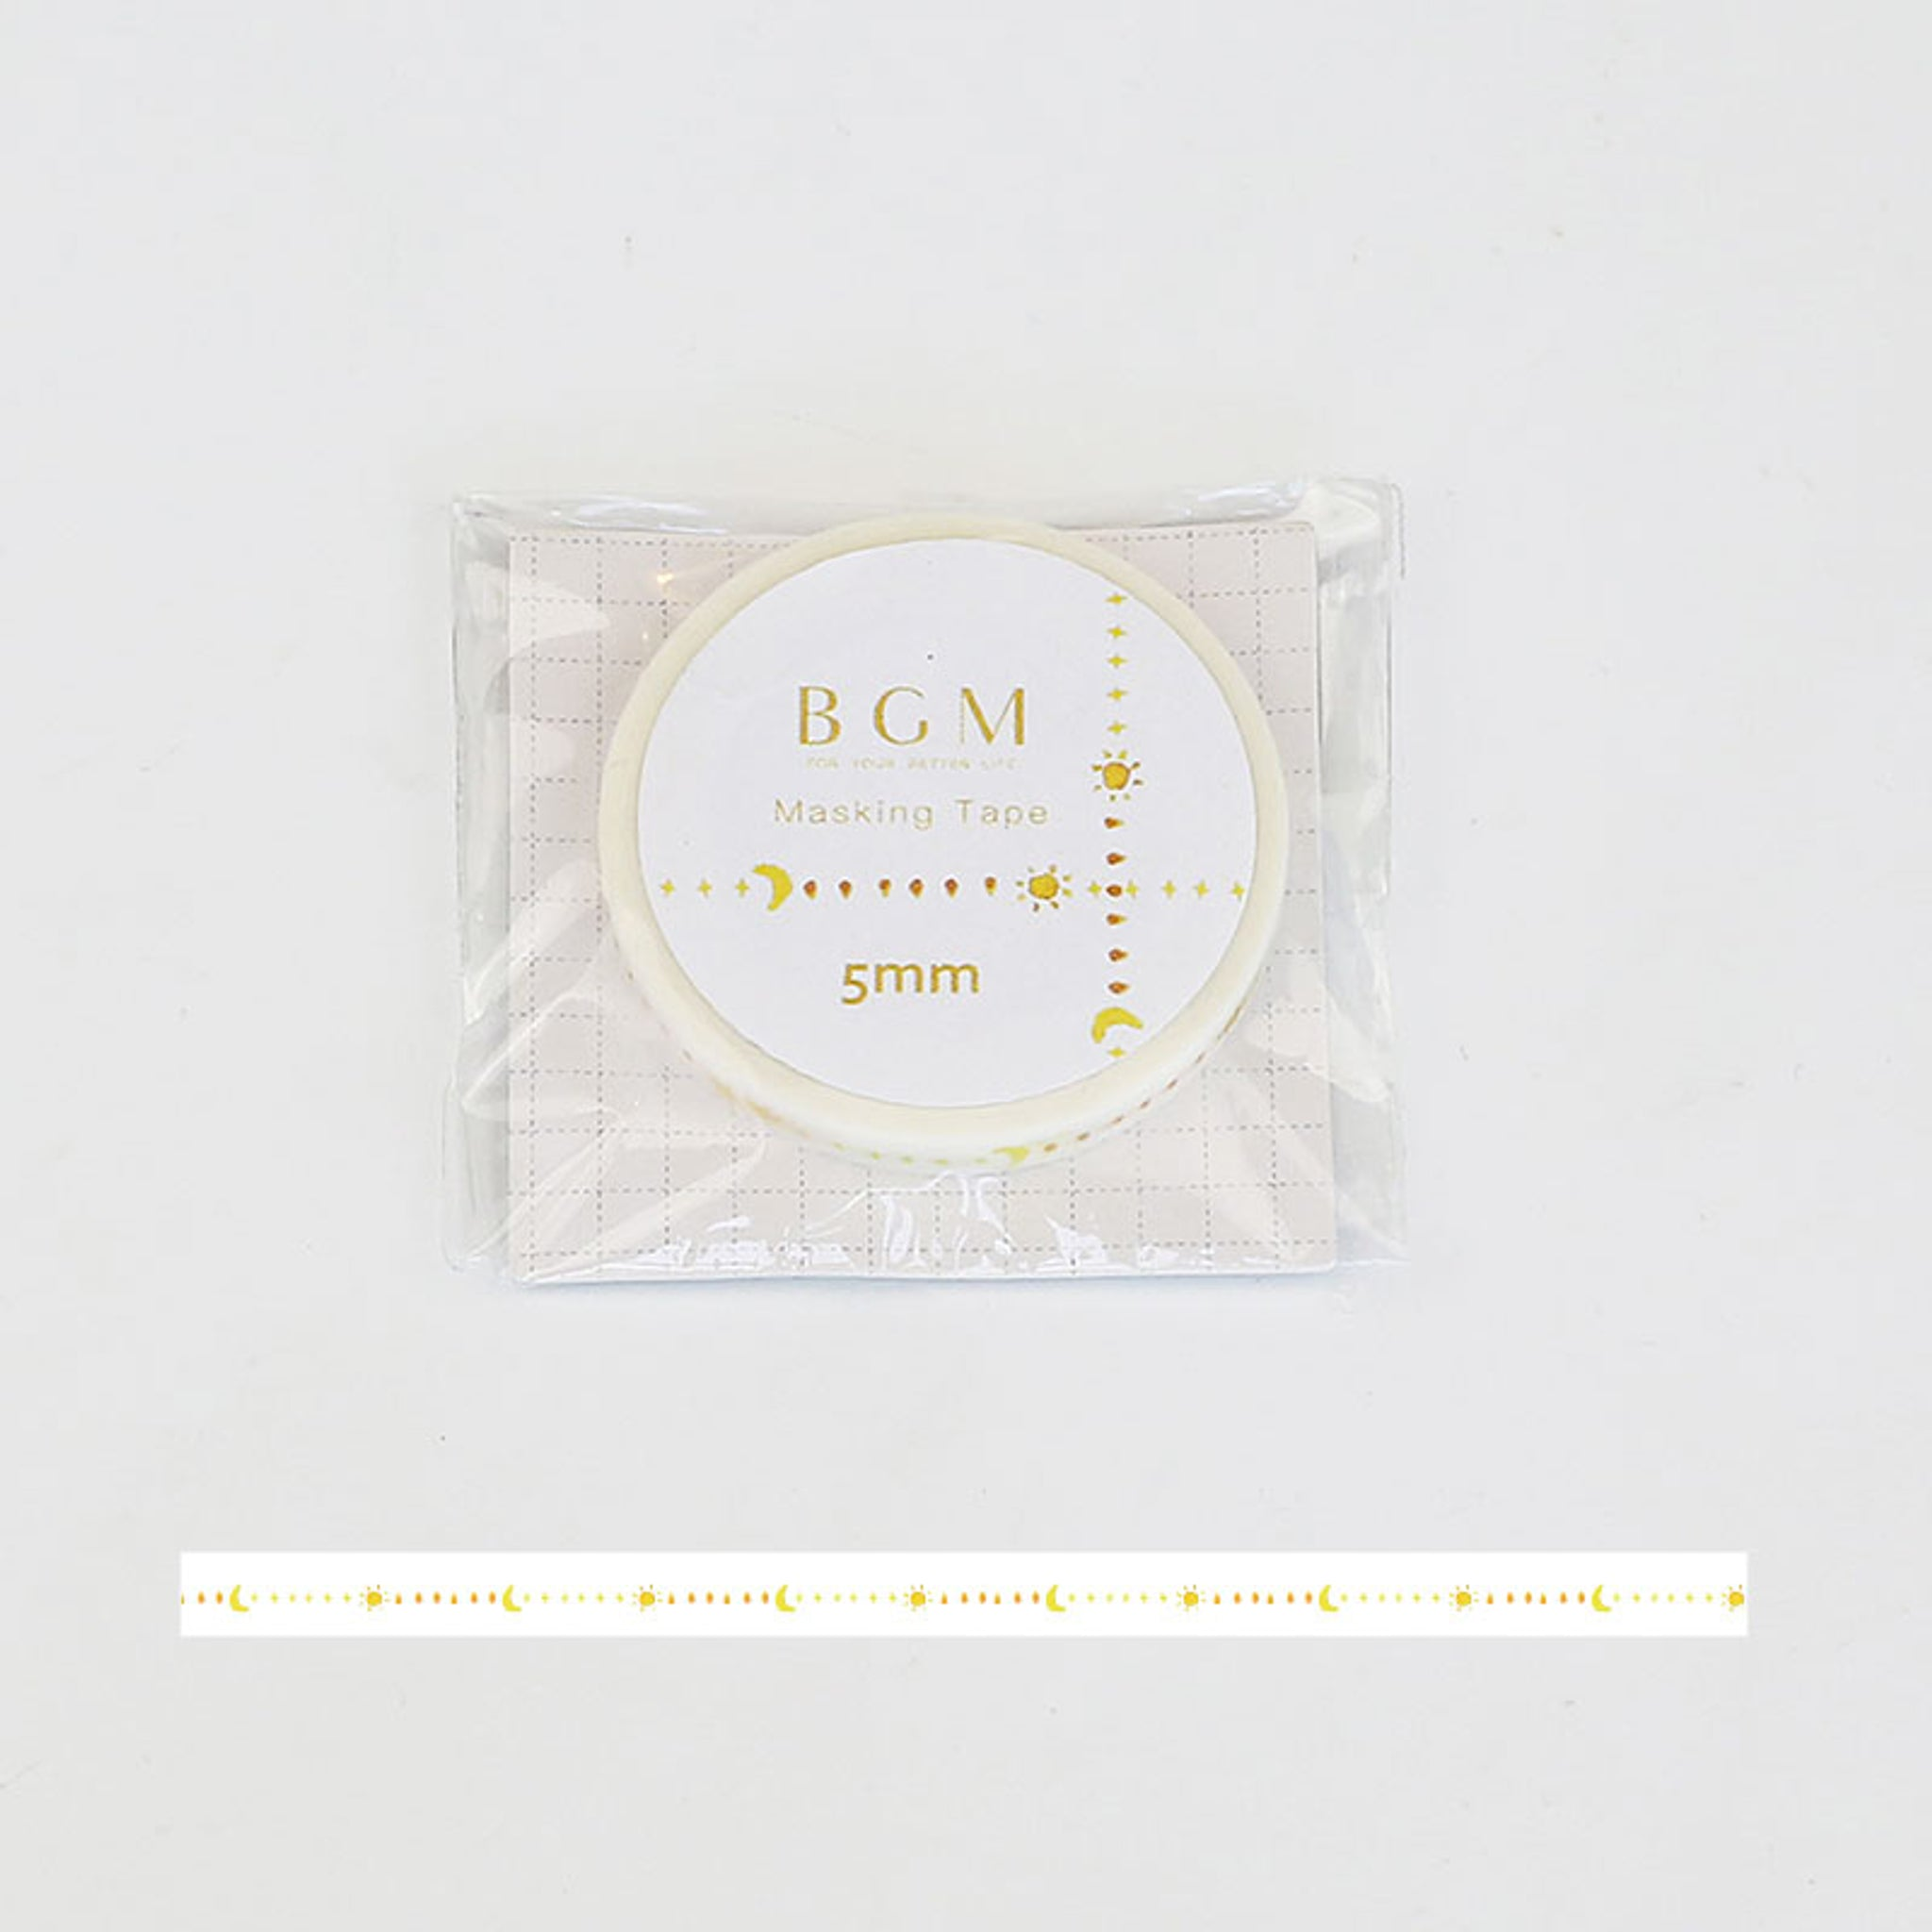 BGM The Sun And The Moon Washi Tape